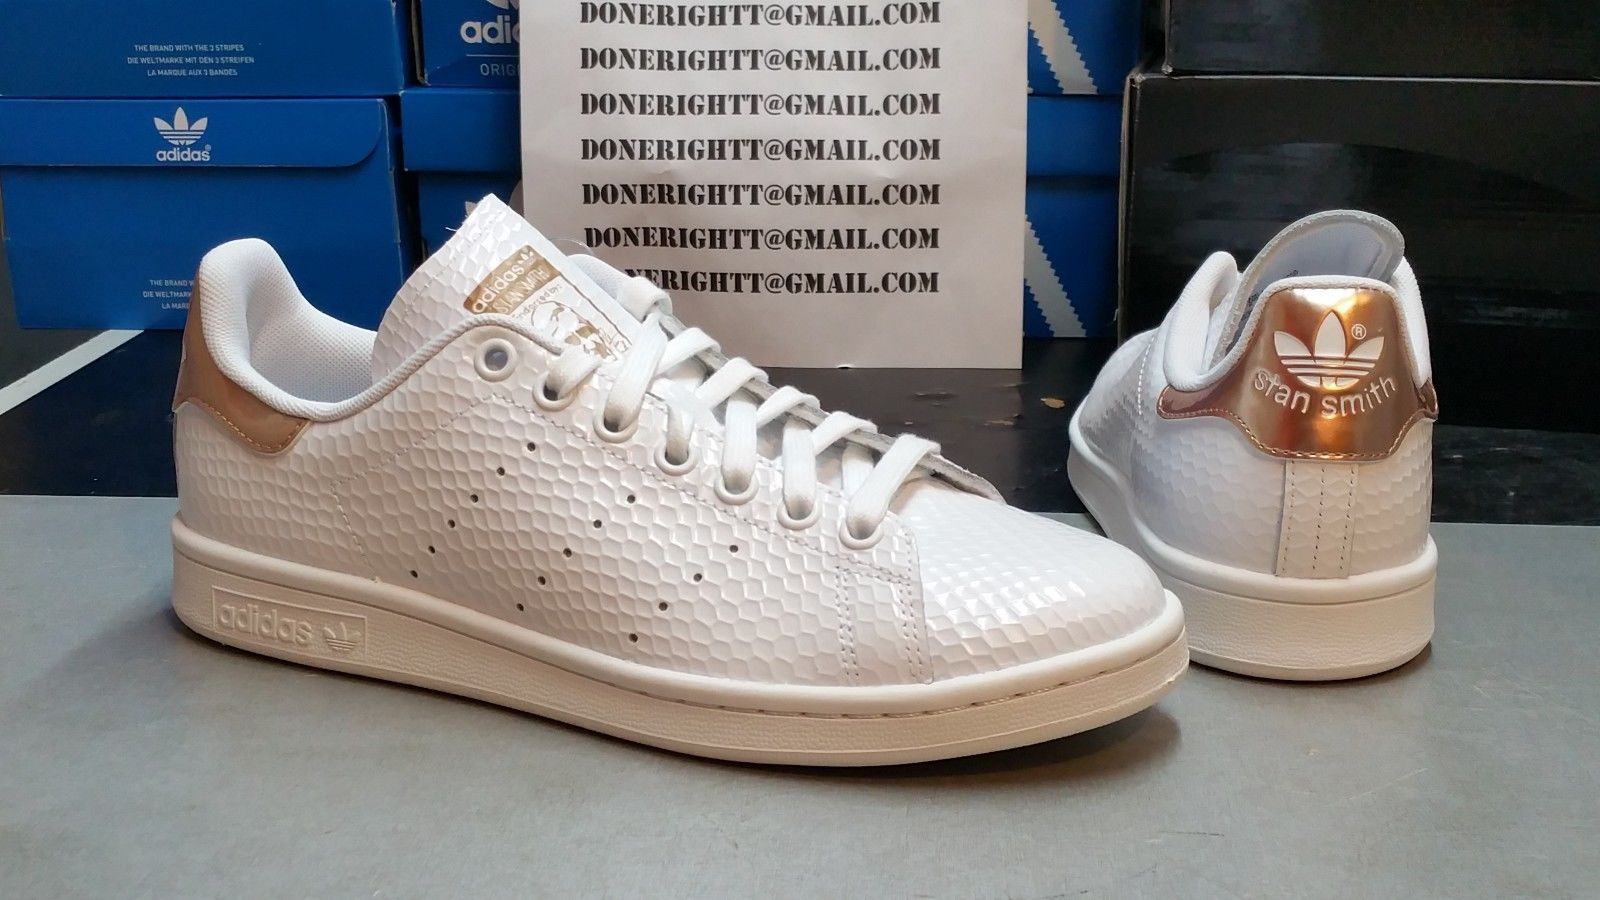 adidas superstar snakeskin rose gold